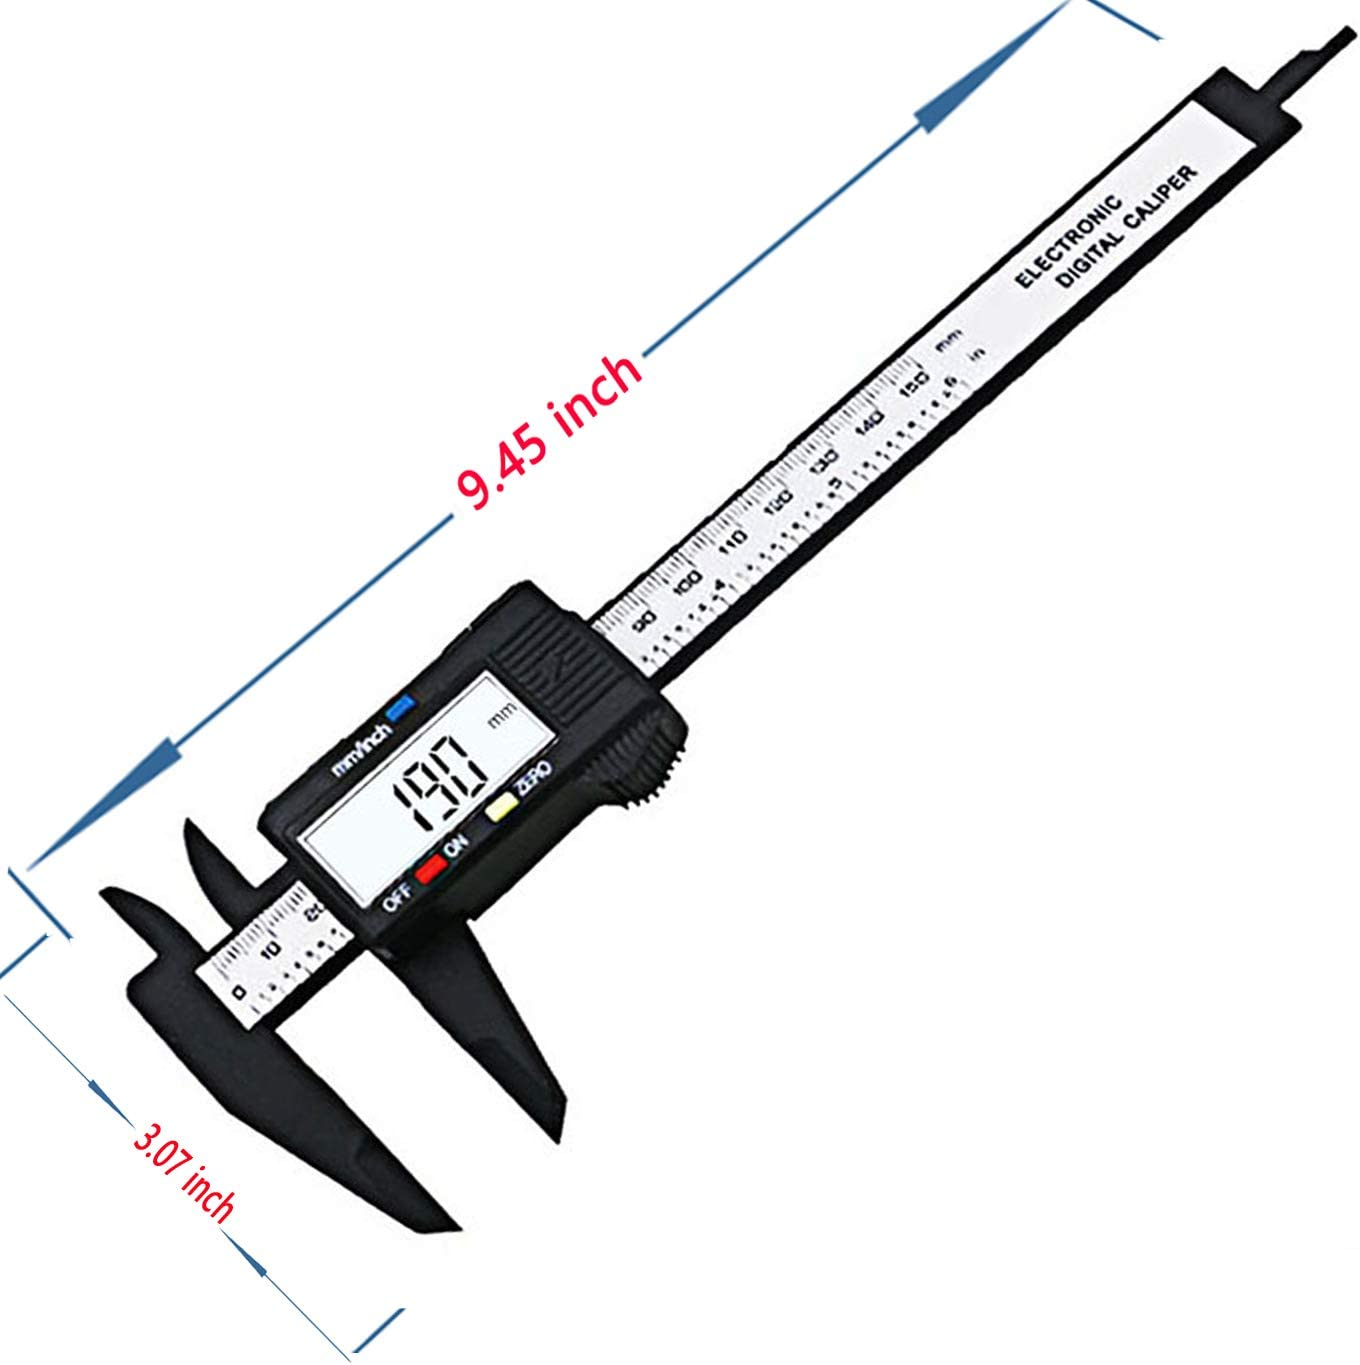 0-6 inches Vernier Caliper with Large LCD Screen Perfect for Household//DIY Measurment etc Amuoc Digital Caliper Inch and Millimeter Conversion Measuring Tool off Feature Auto